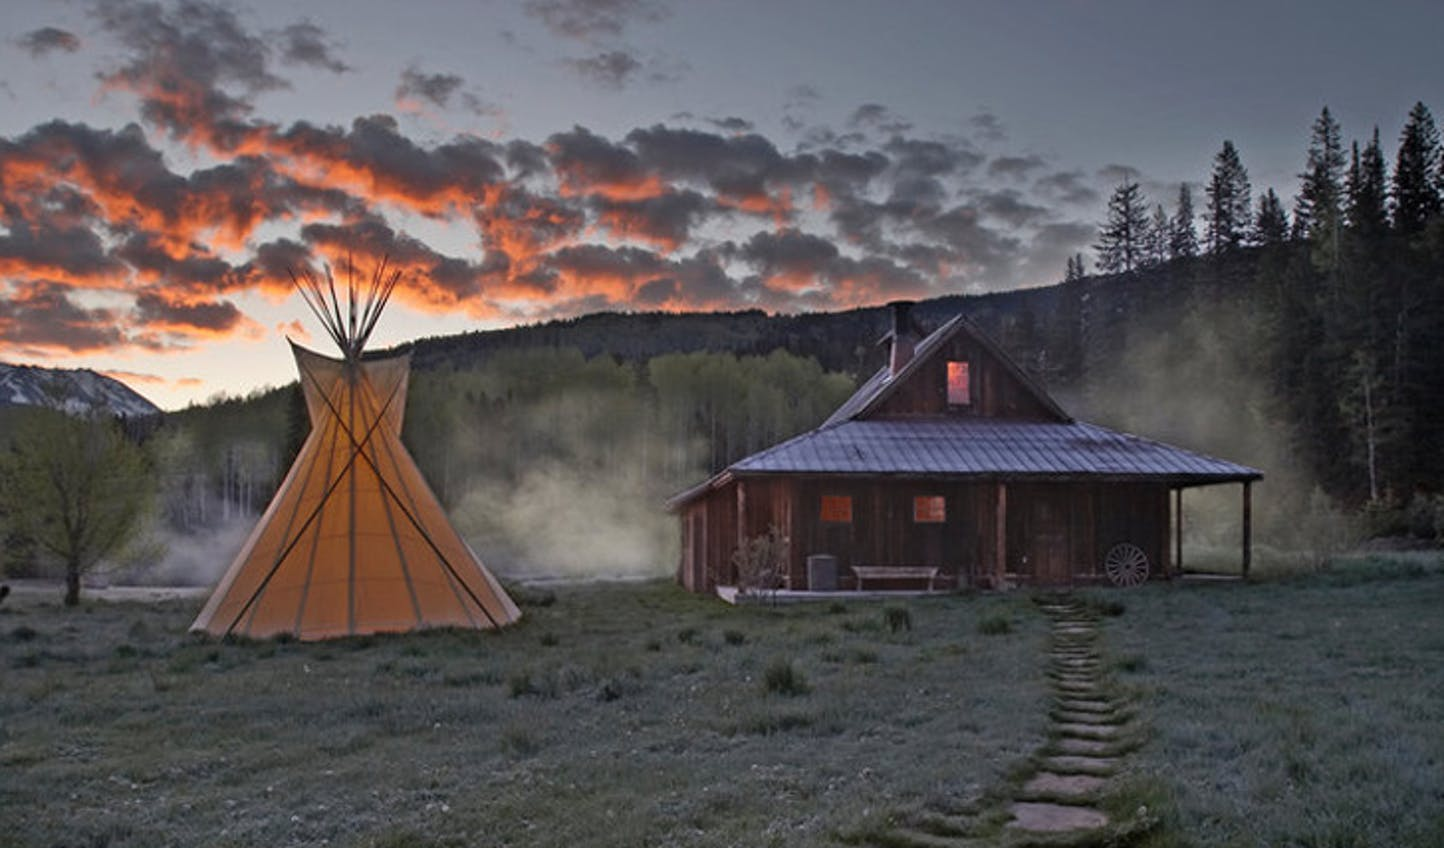 Sleep under the stars at Dunton Hot Springs